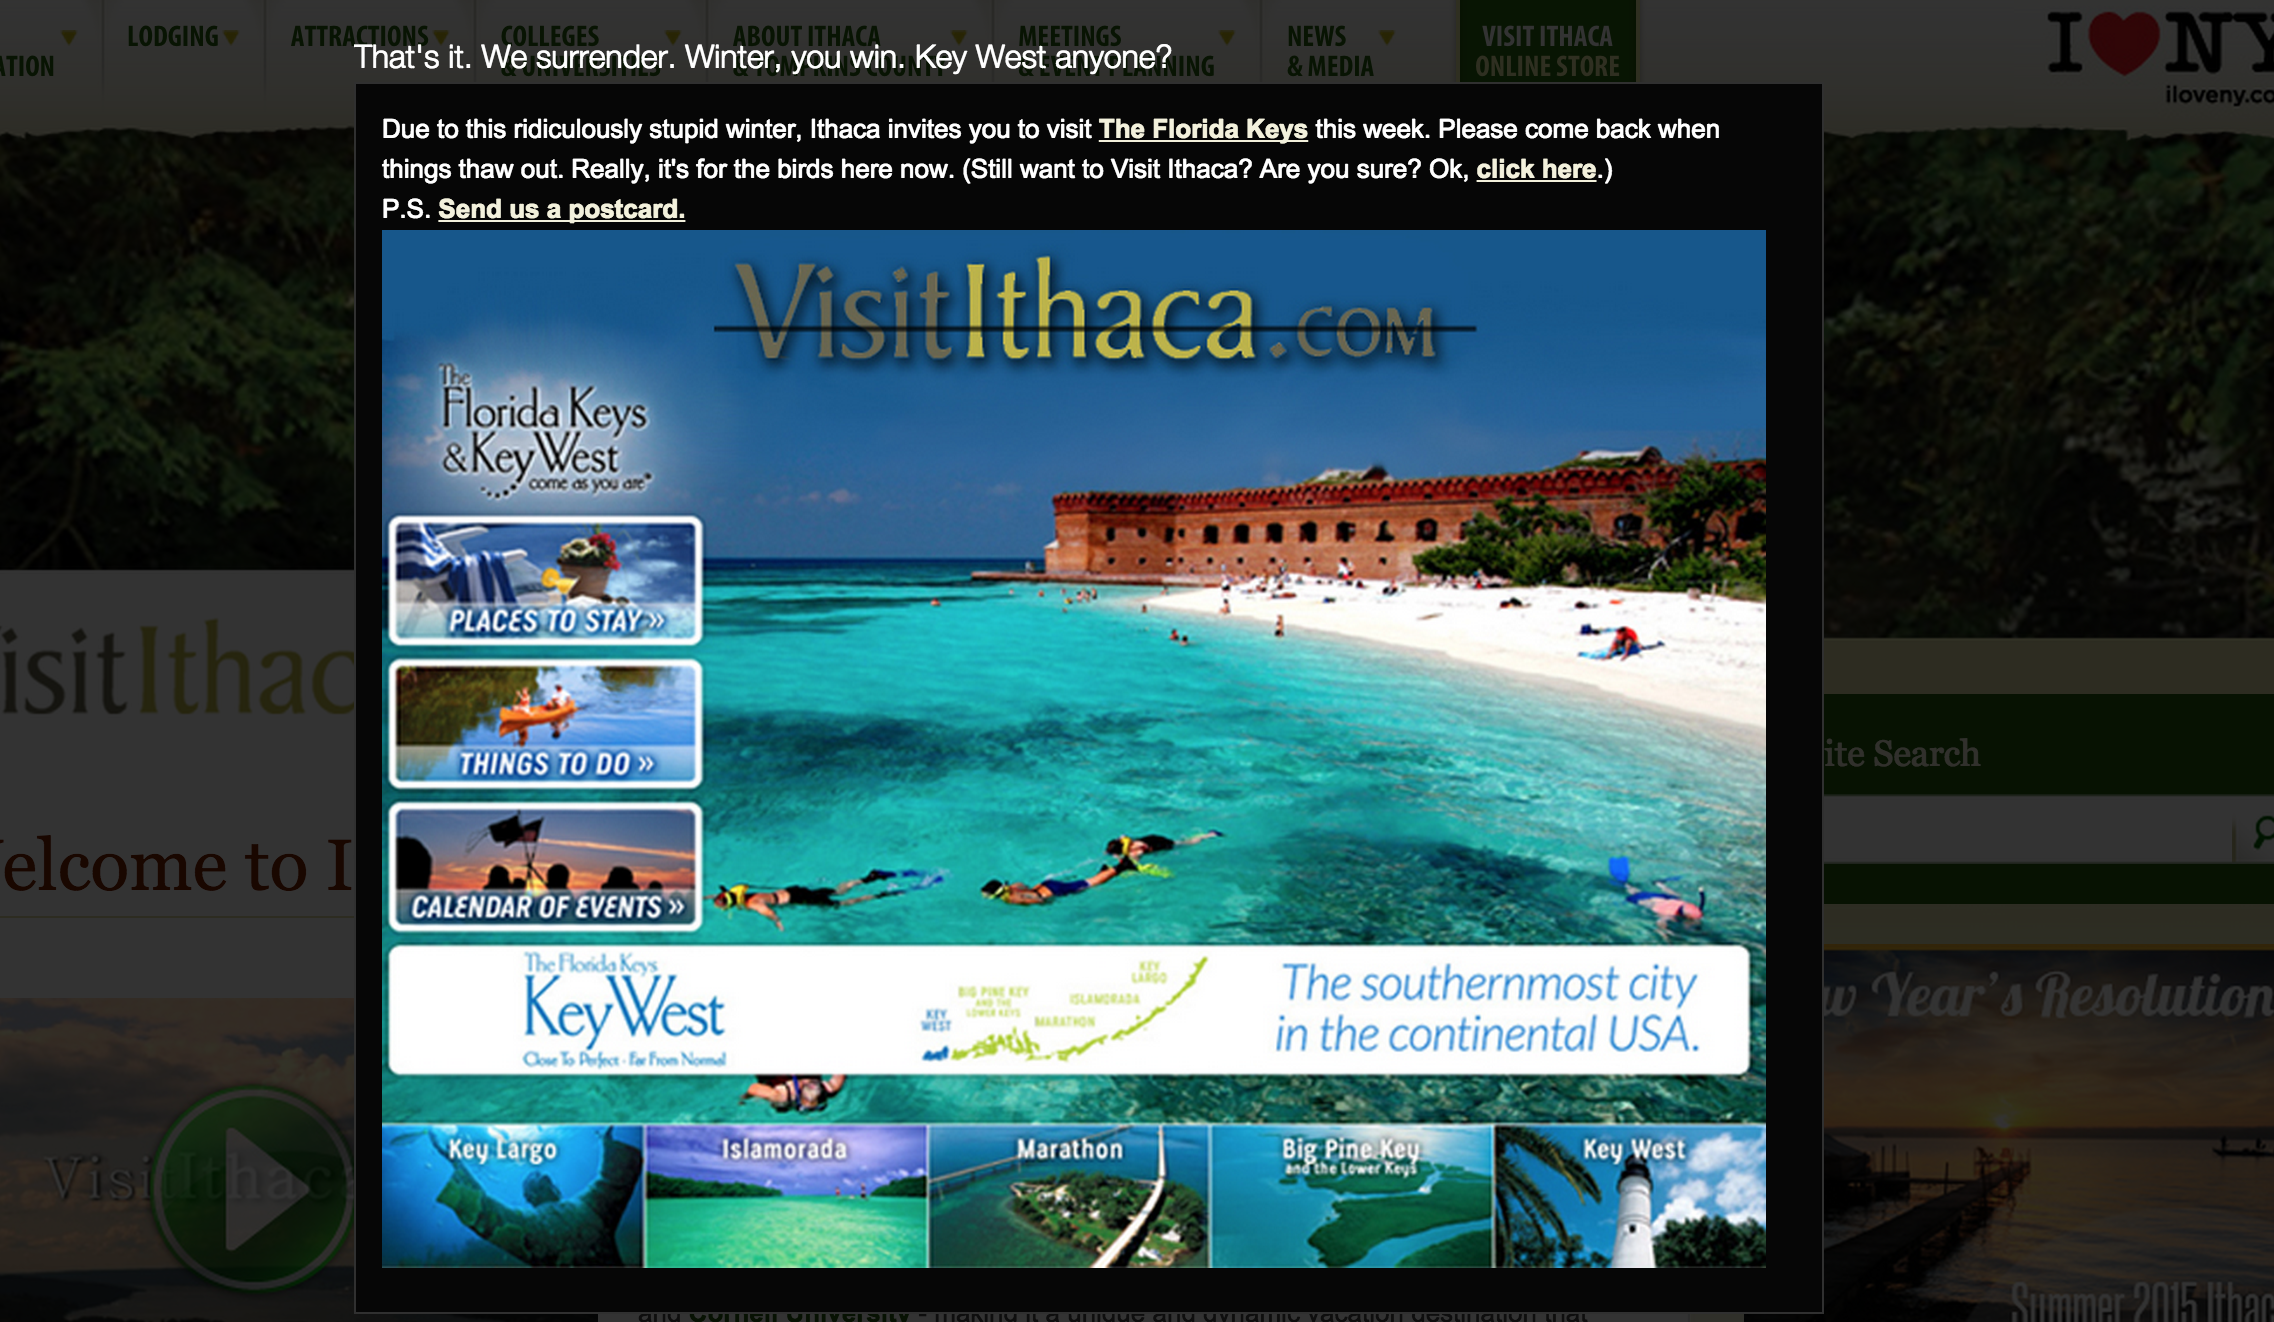 Visitors Bureau For Ice-Cold Ithaca Tells People To Just Go Get Warm In Key West